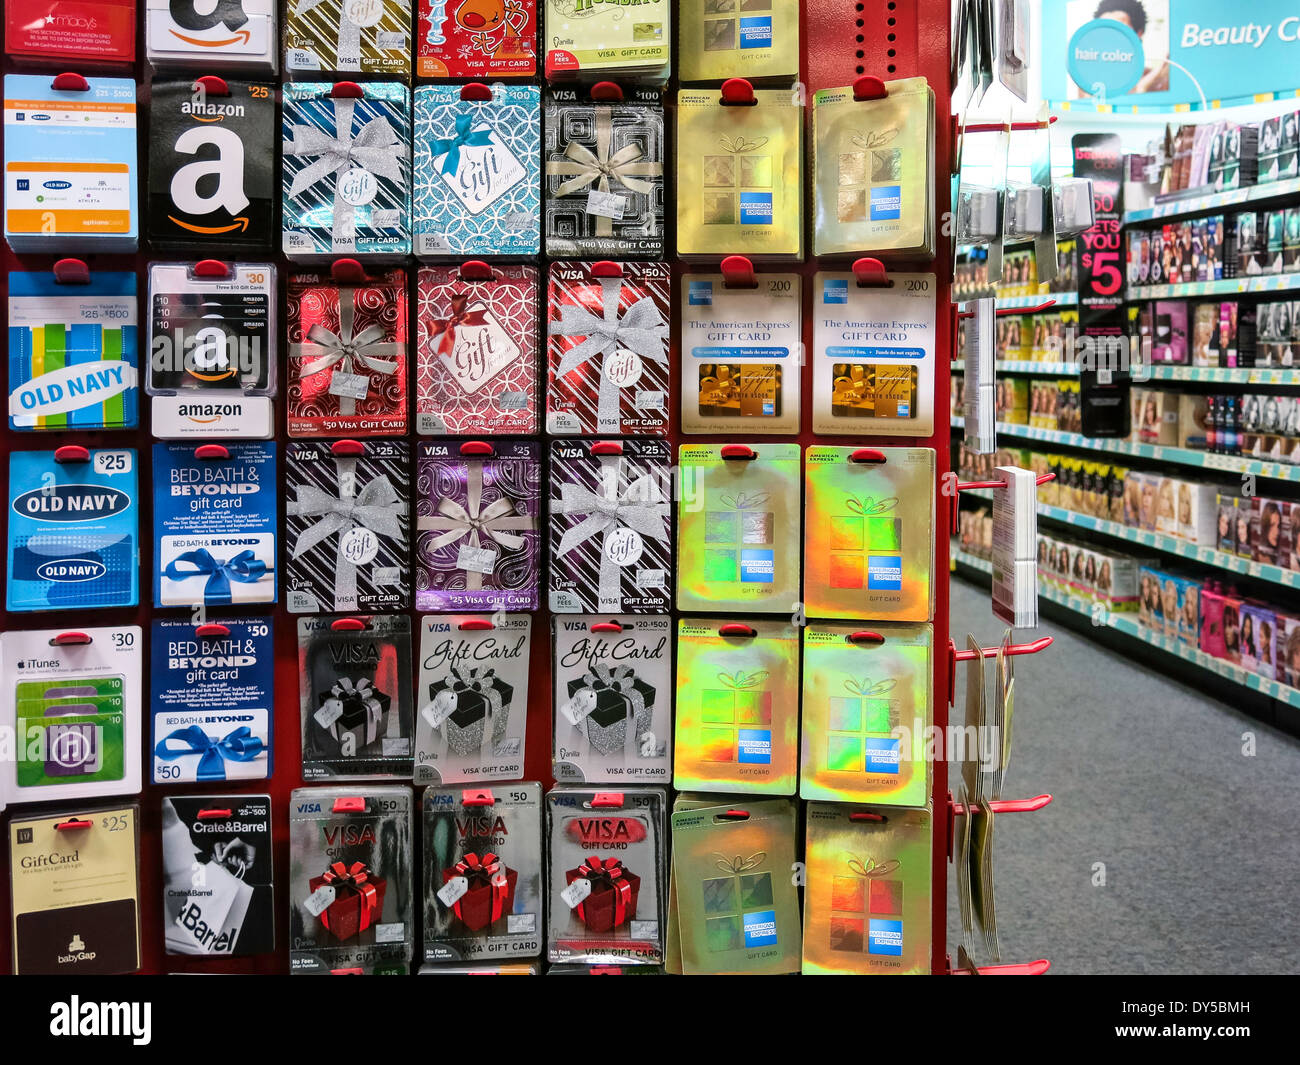 prepaid card center display cvs drugstore  usa stock photo  royalty free image  68345777